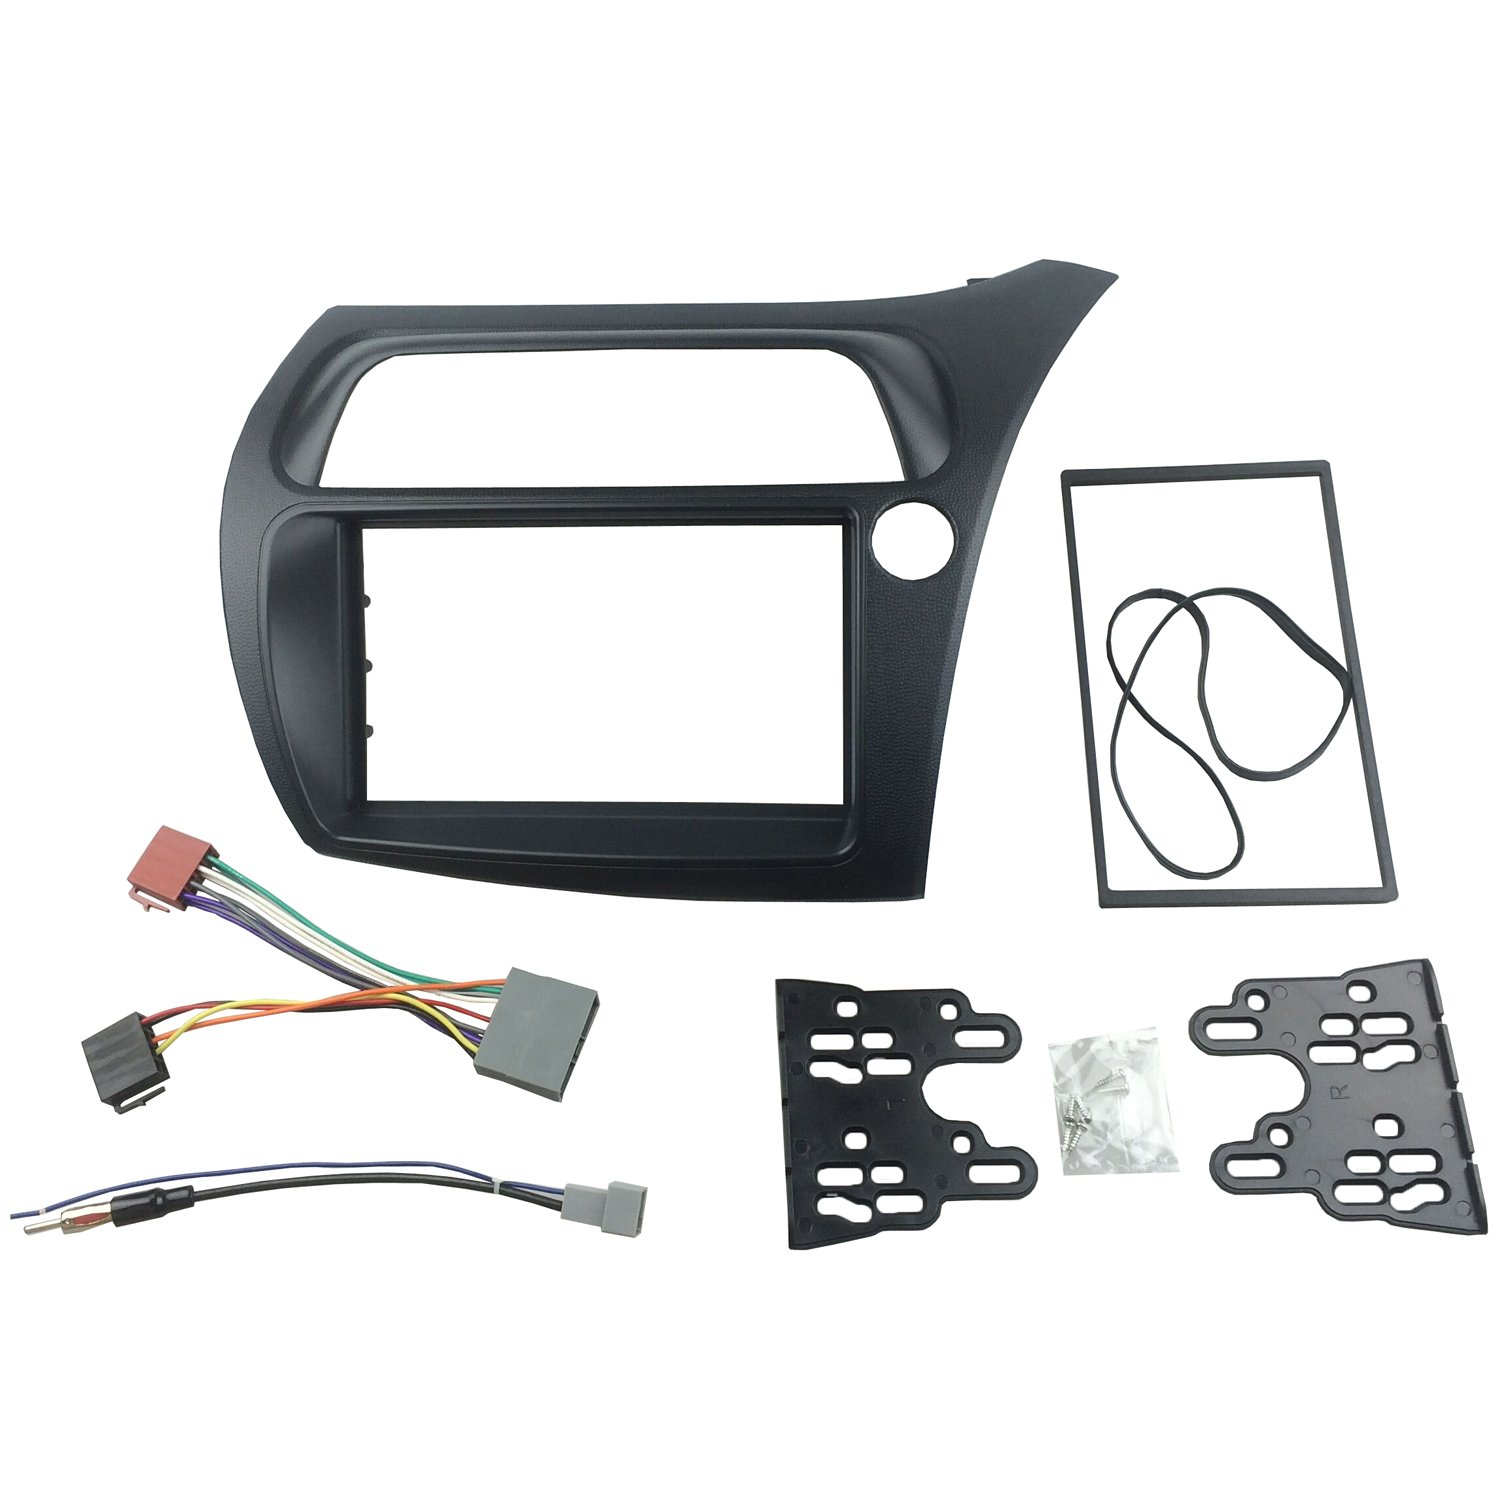 MAXIOU DKM013HO Double Din Stereo Facia Adaptor with Iso Wiring Cable Aerial 178*102Mm Opening